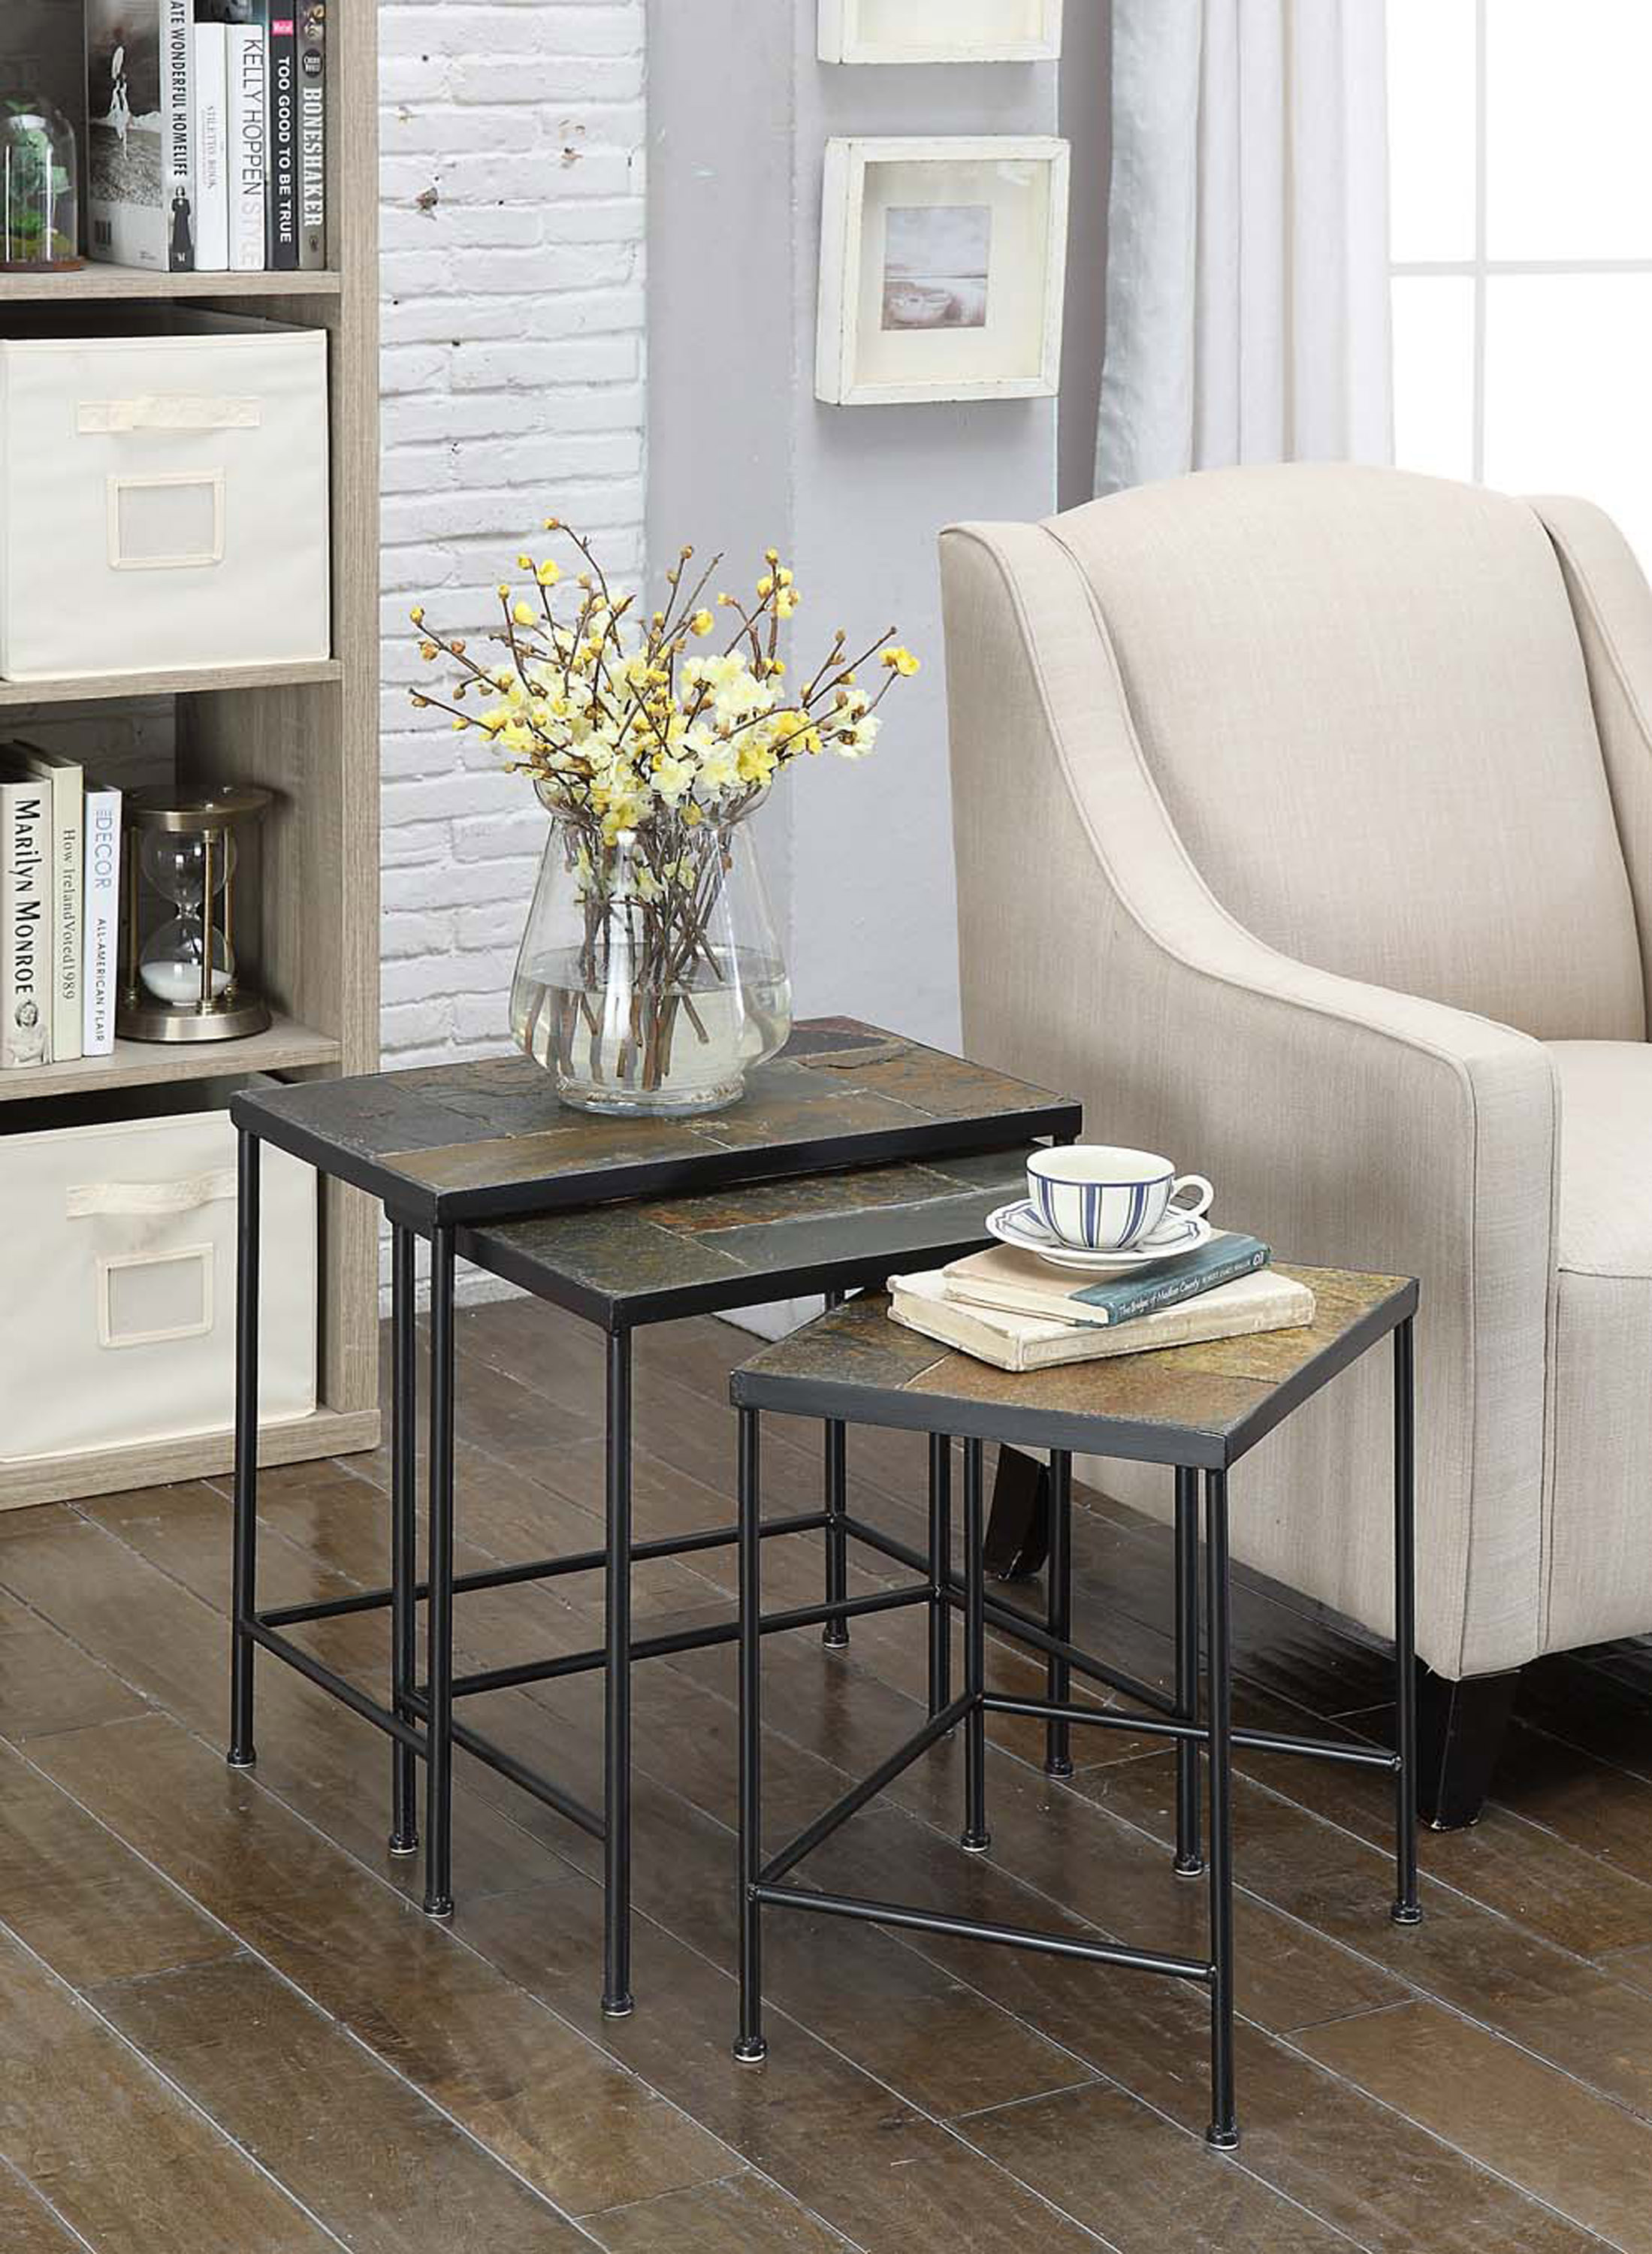 4D Concepts 601609 3 piece Nesting Tables with Slate Tops - Metal/Slate